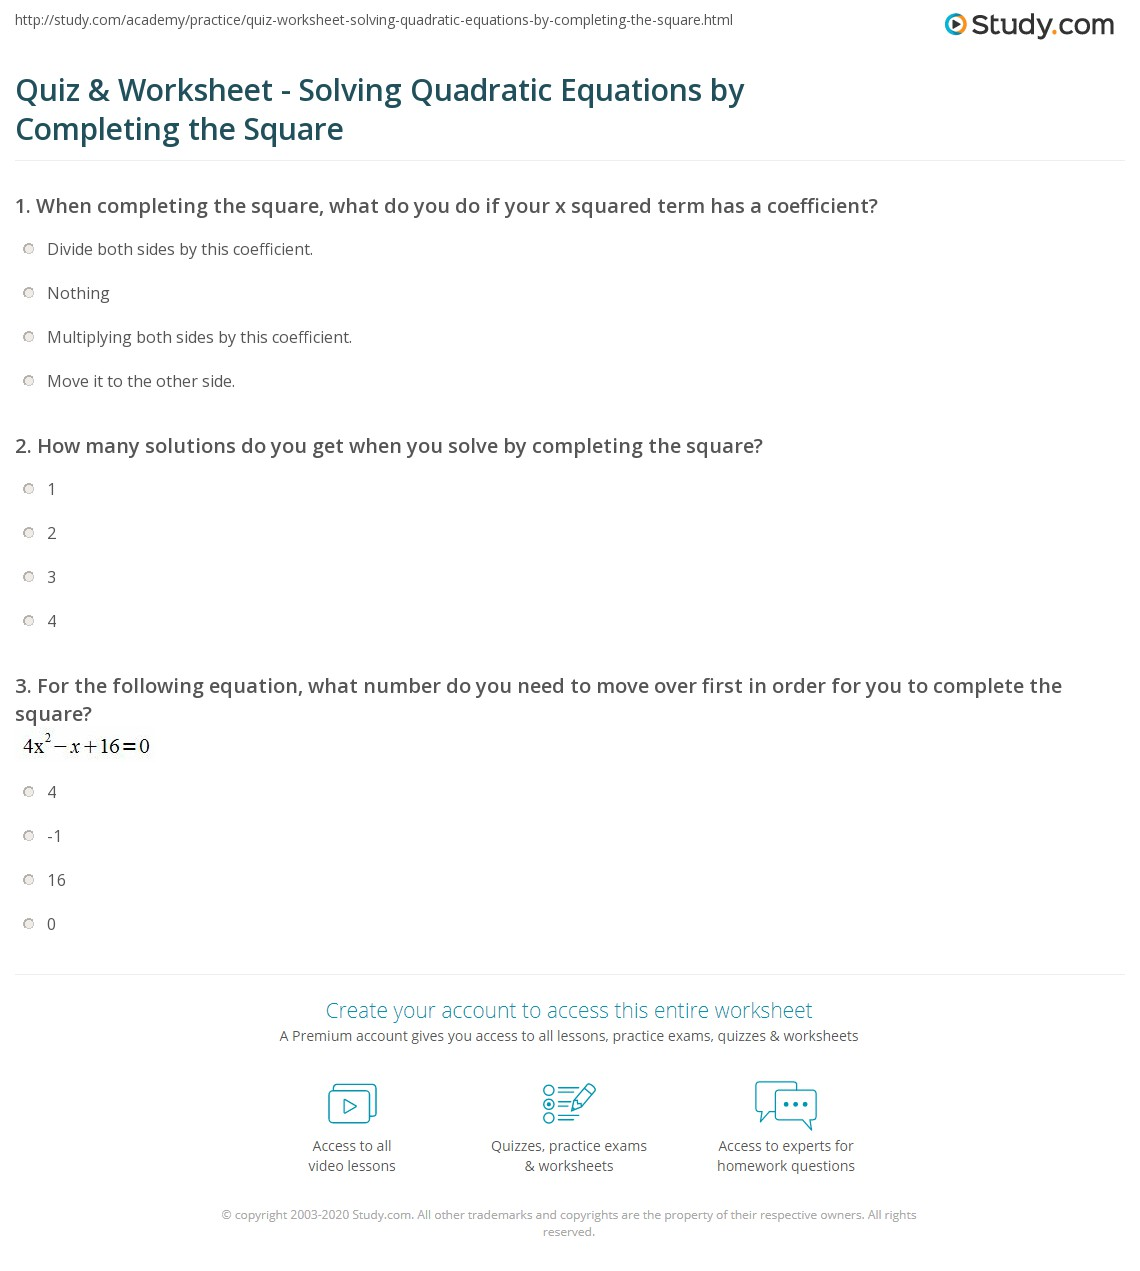 Print Solving Quadratic Equations Bypleting The Square Worksheetpleting